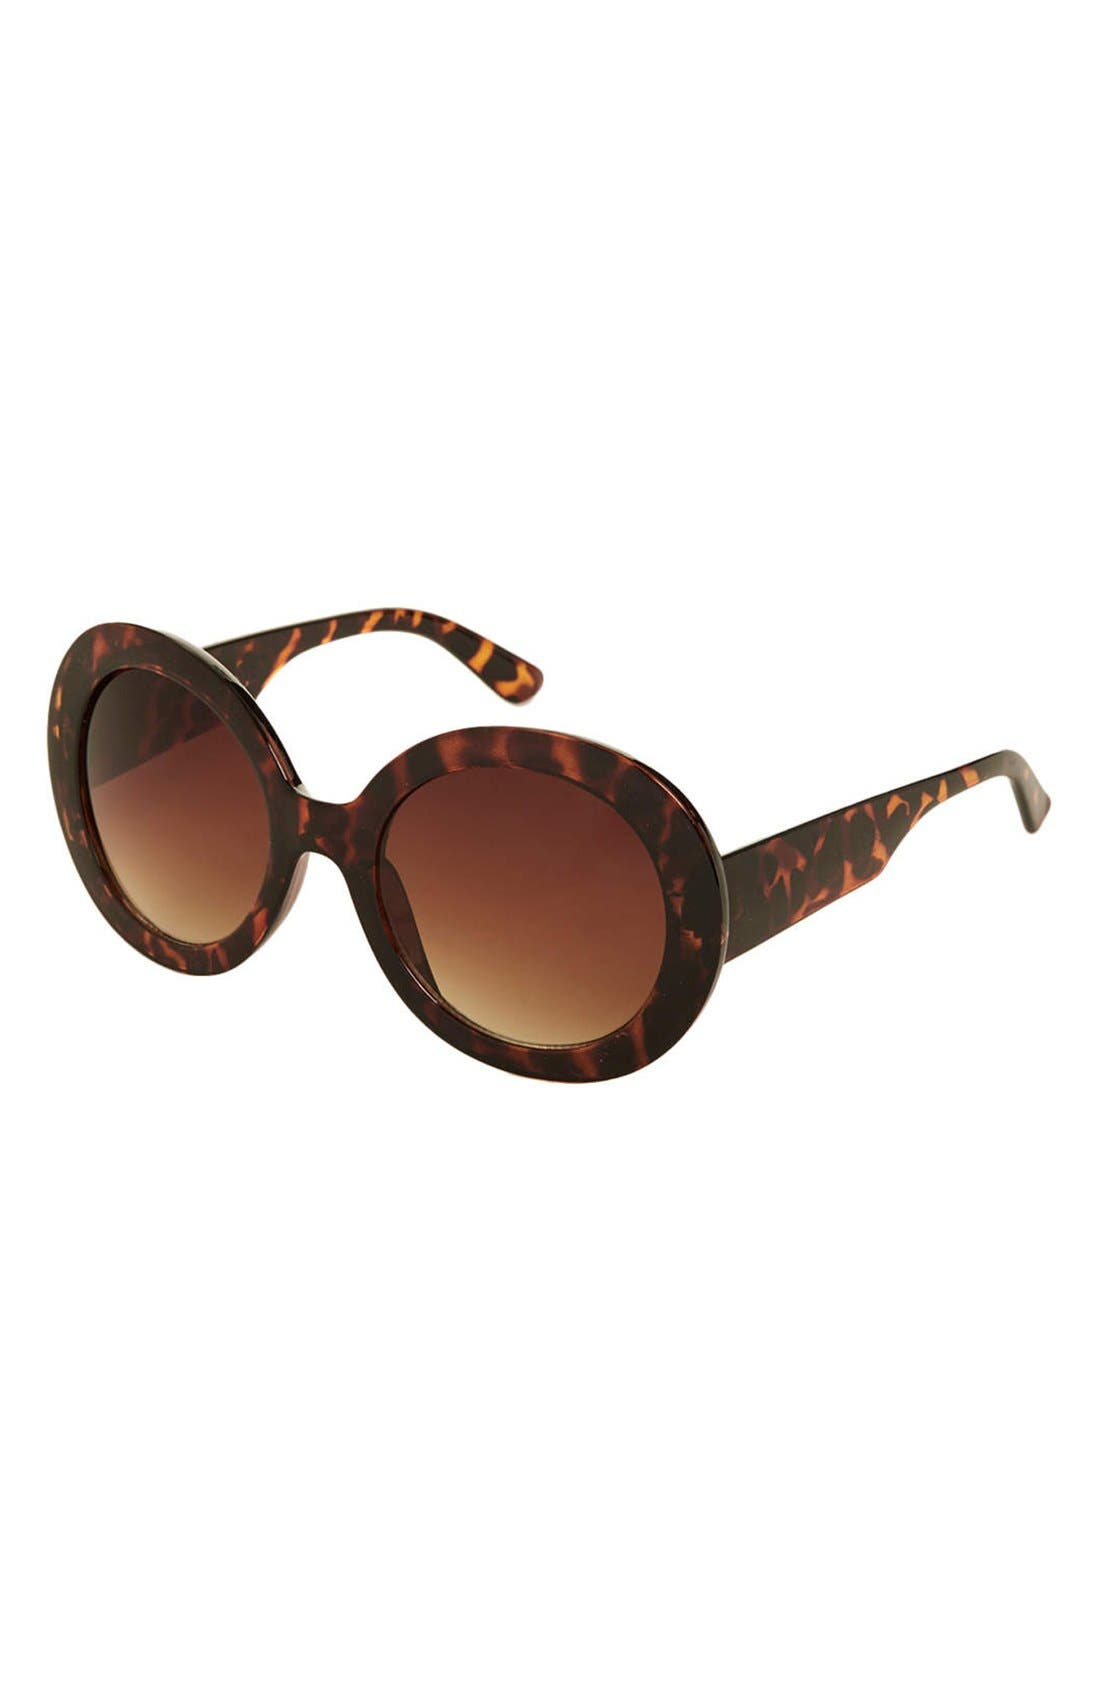 Alternate Image 1 Selected - Topshop 'Petra' 54mm Oversized Round Sunglasses